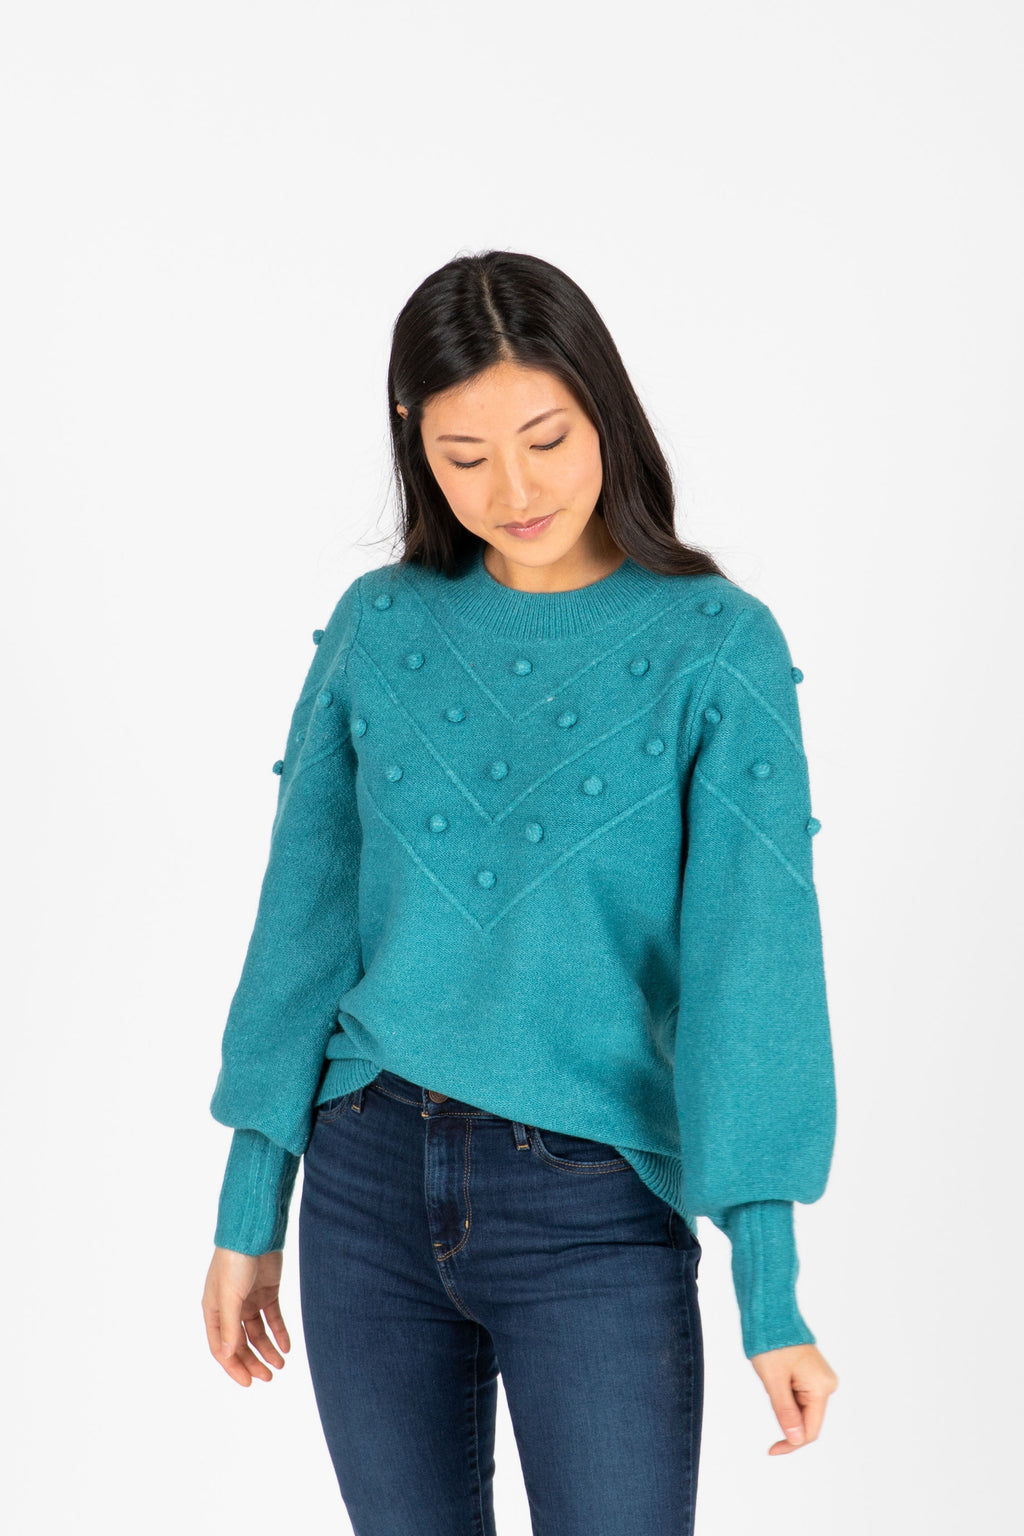 The Clyde Pom Sweater in Teal